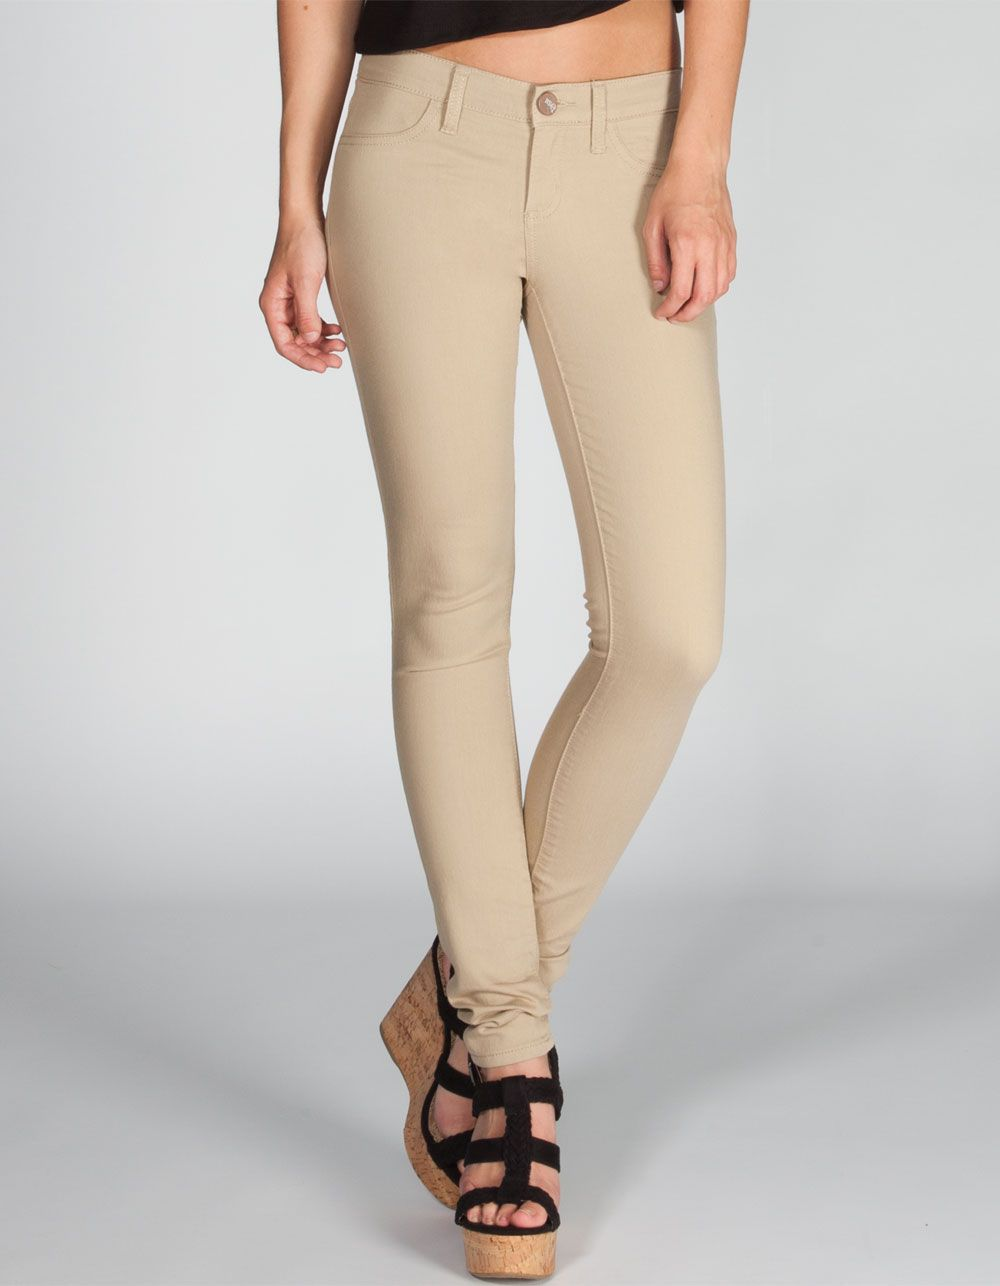 Rsq Miami Womens Jeggings 215411415 Jeggings With Images Womens Jeggings Khaki Jeggings Zipper Leggings